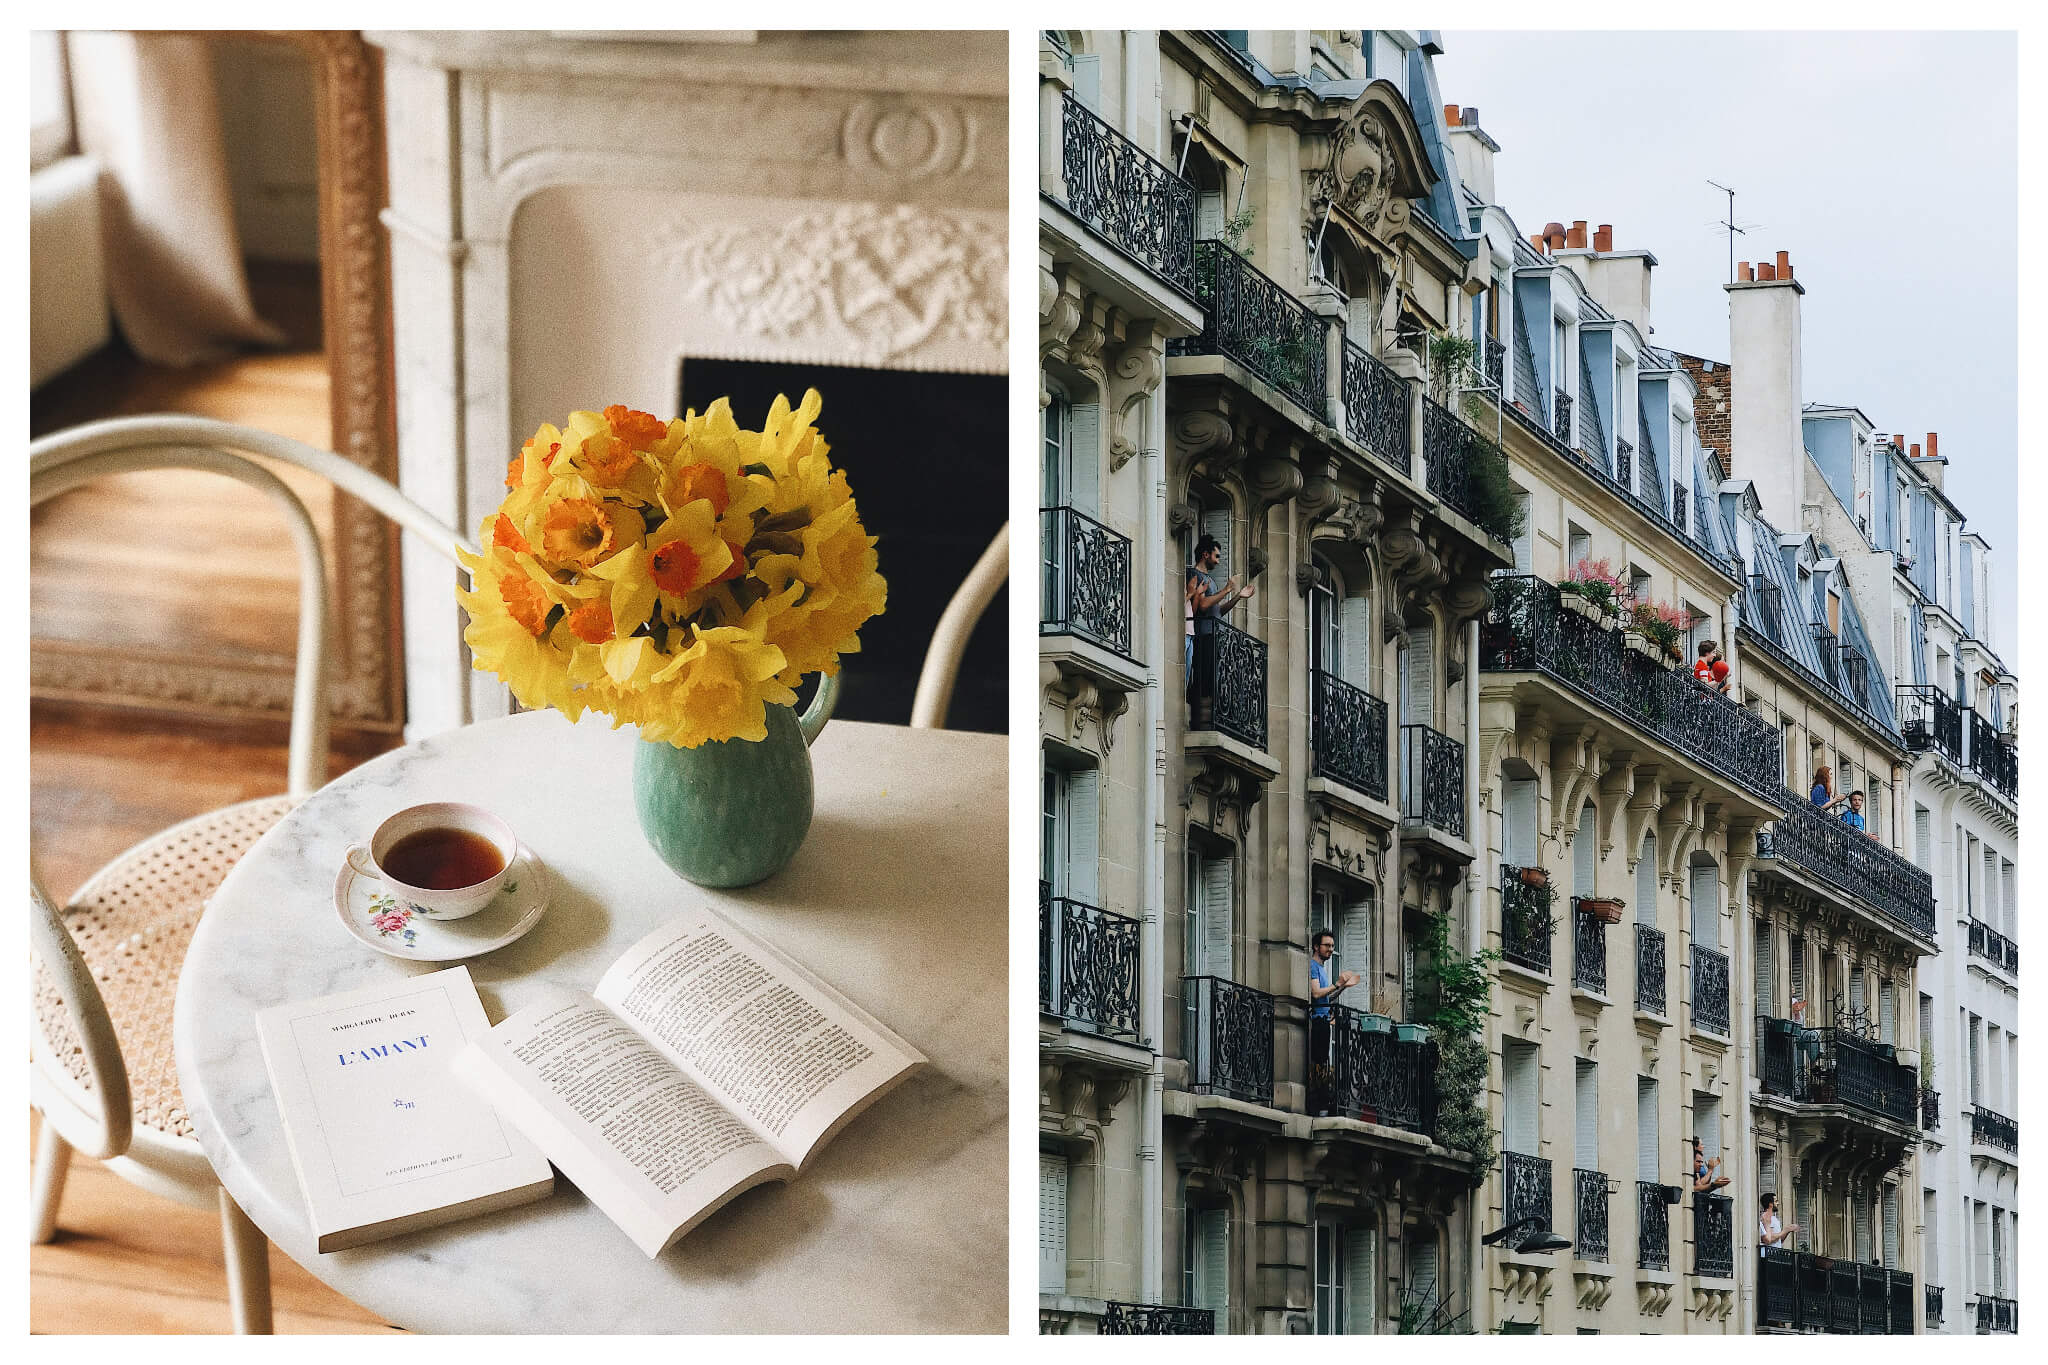 Left: Books, tea, and beautiful yellow flowers inside a blue vase sit atop a white marble table, Right: A view of Parisian apartments on a gray day.